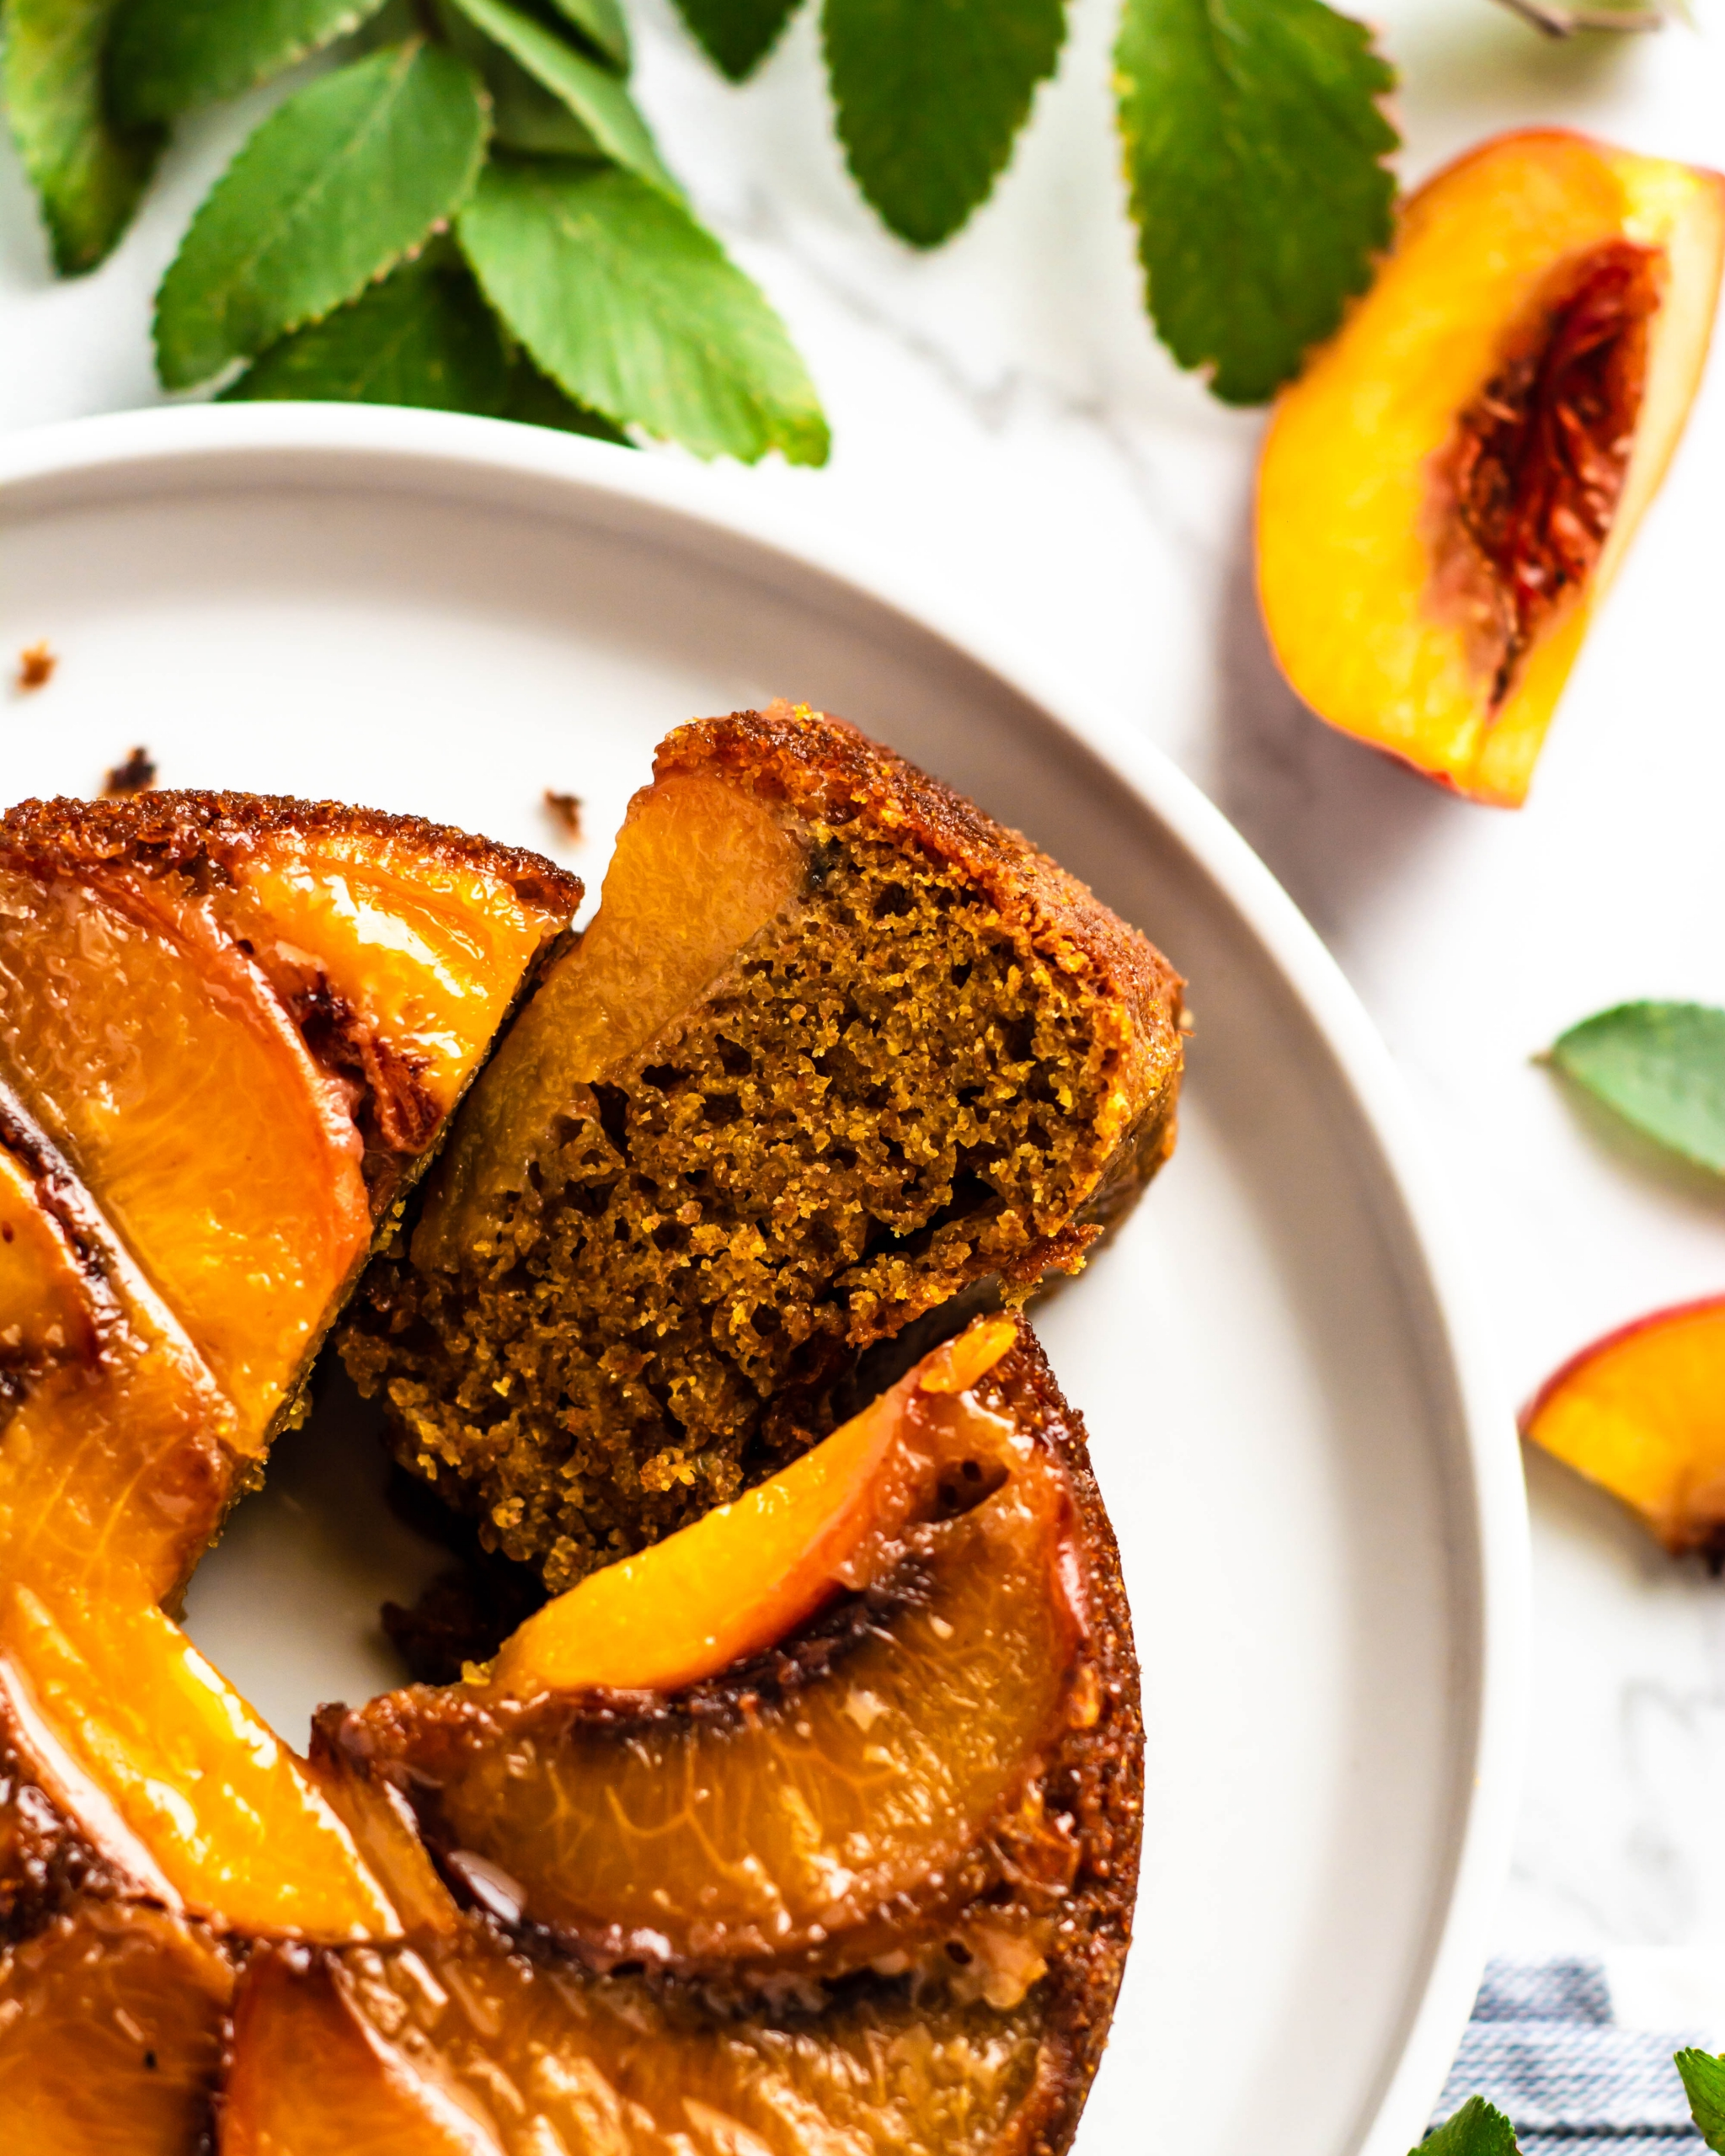 Upside down peach cake with a slice open